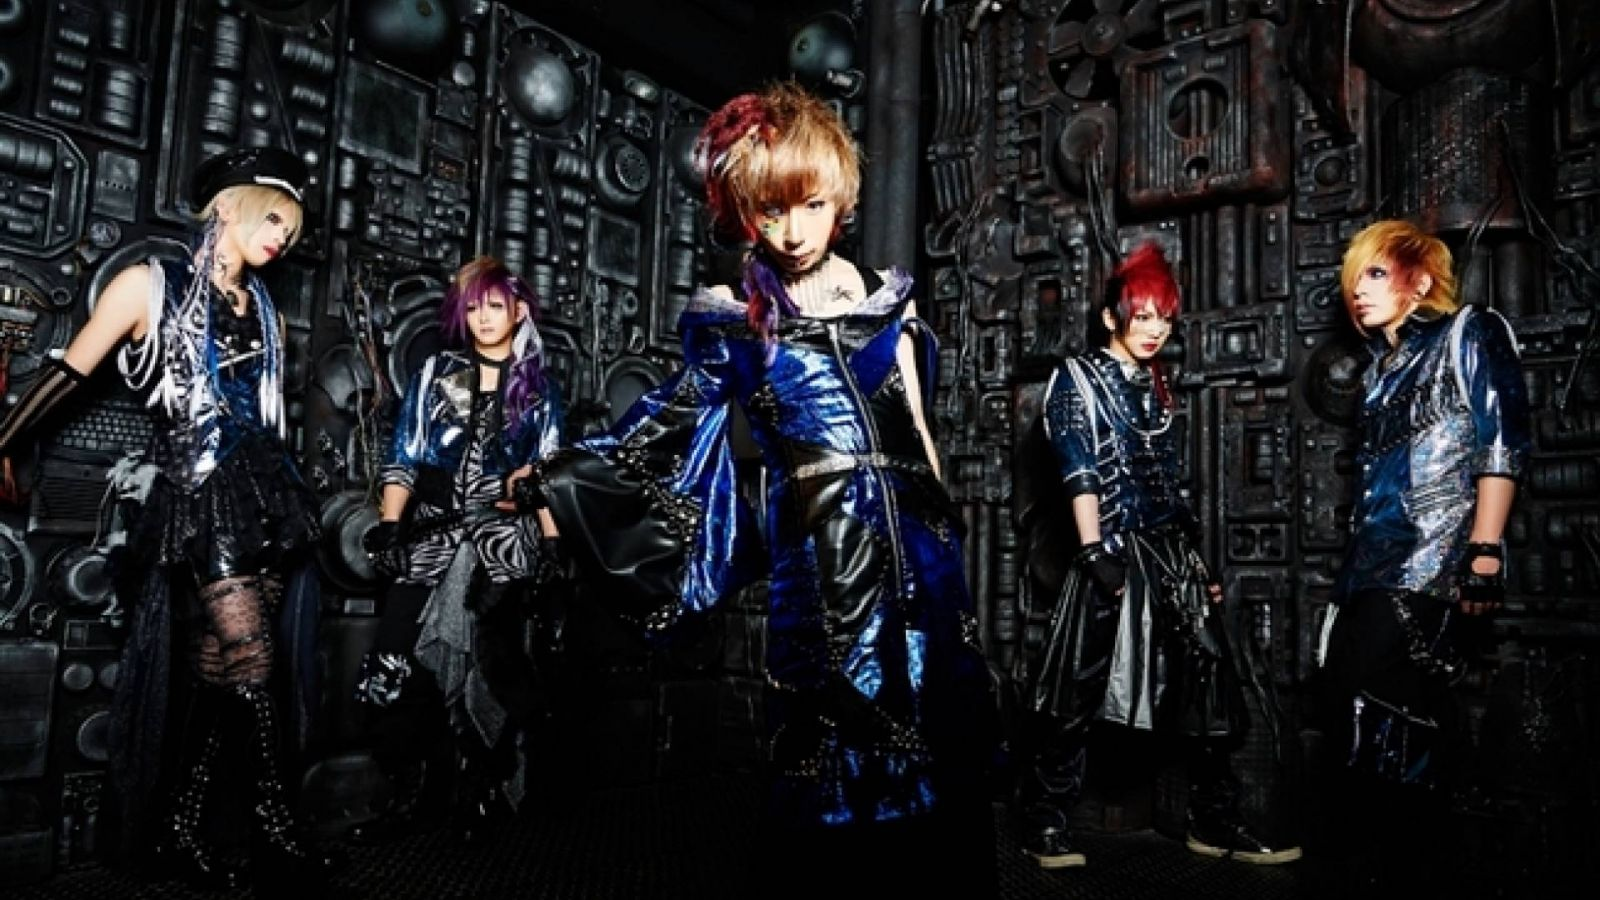 DOWNER to disband © DOWNER